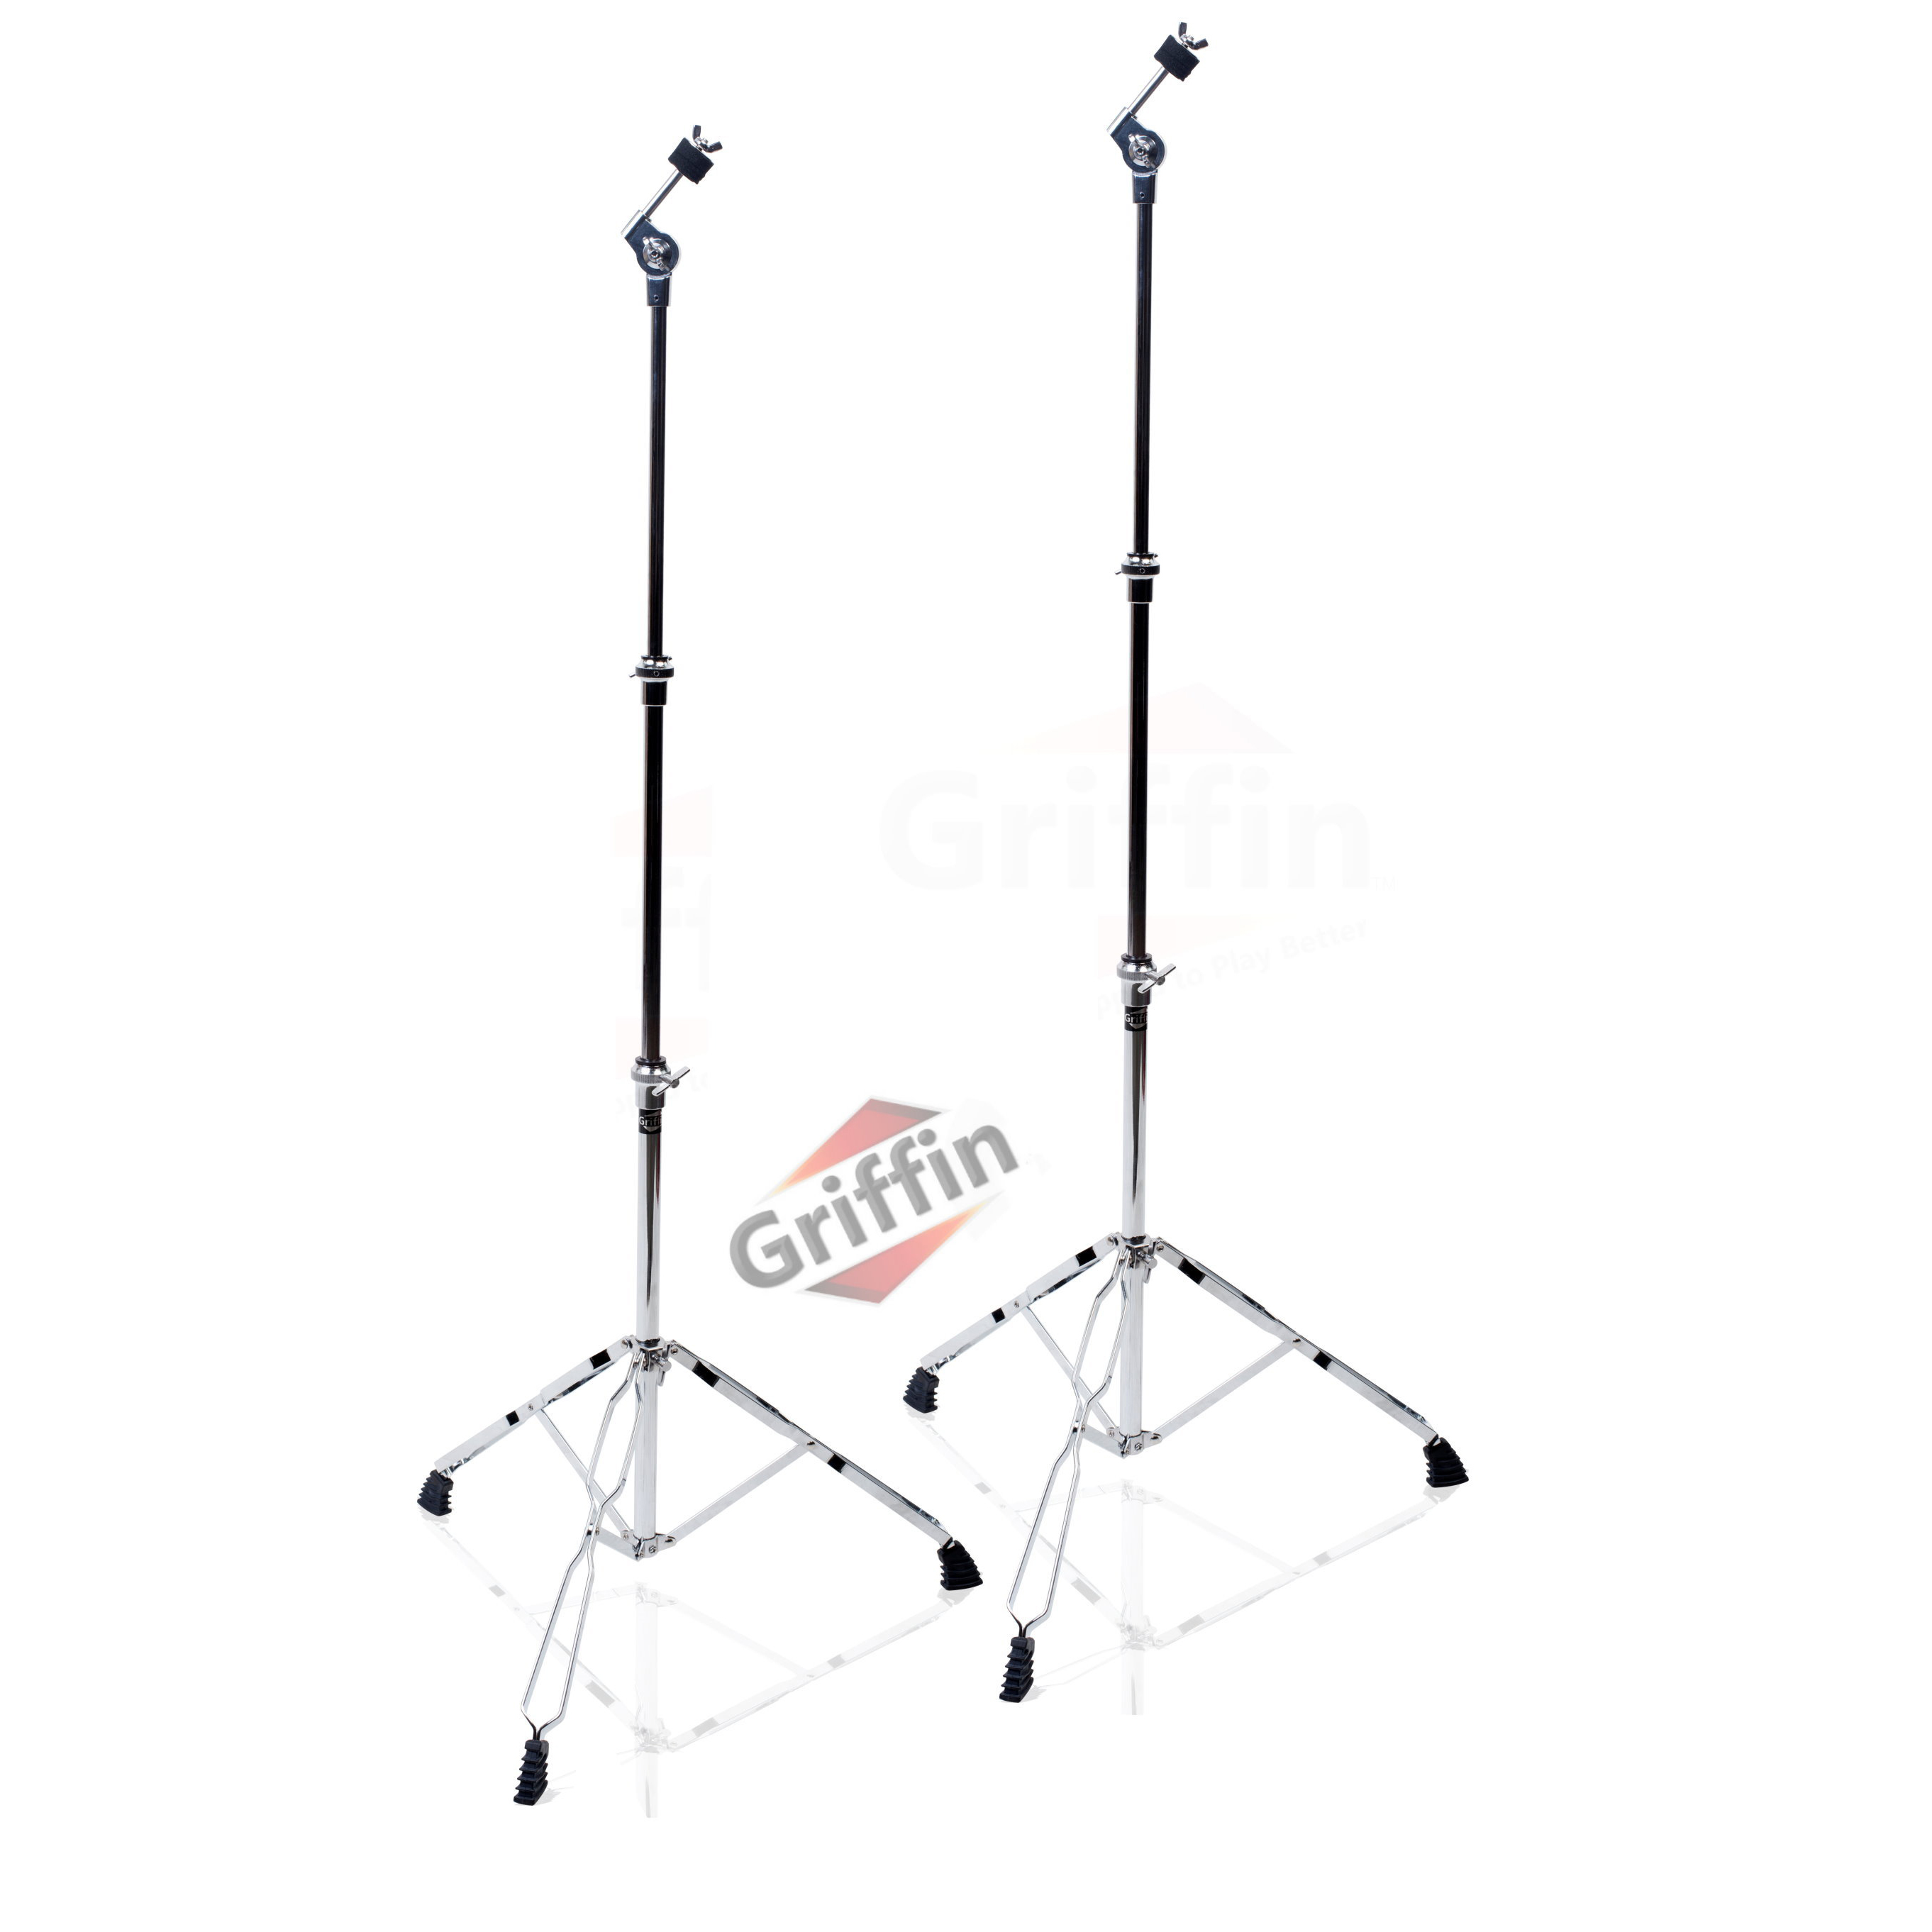 Straight Cymbal Stand Drum Hardware 2 Pack Drummers Double-Braced Cymbal Stands by Griffin